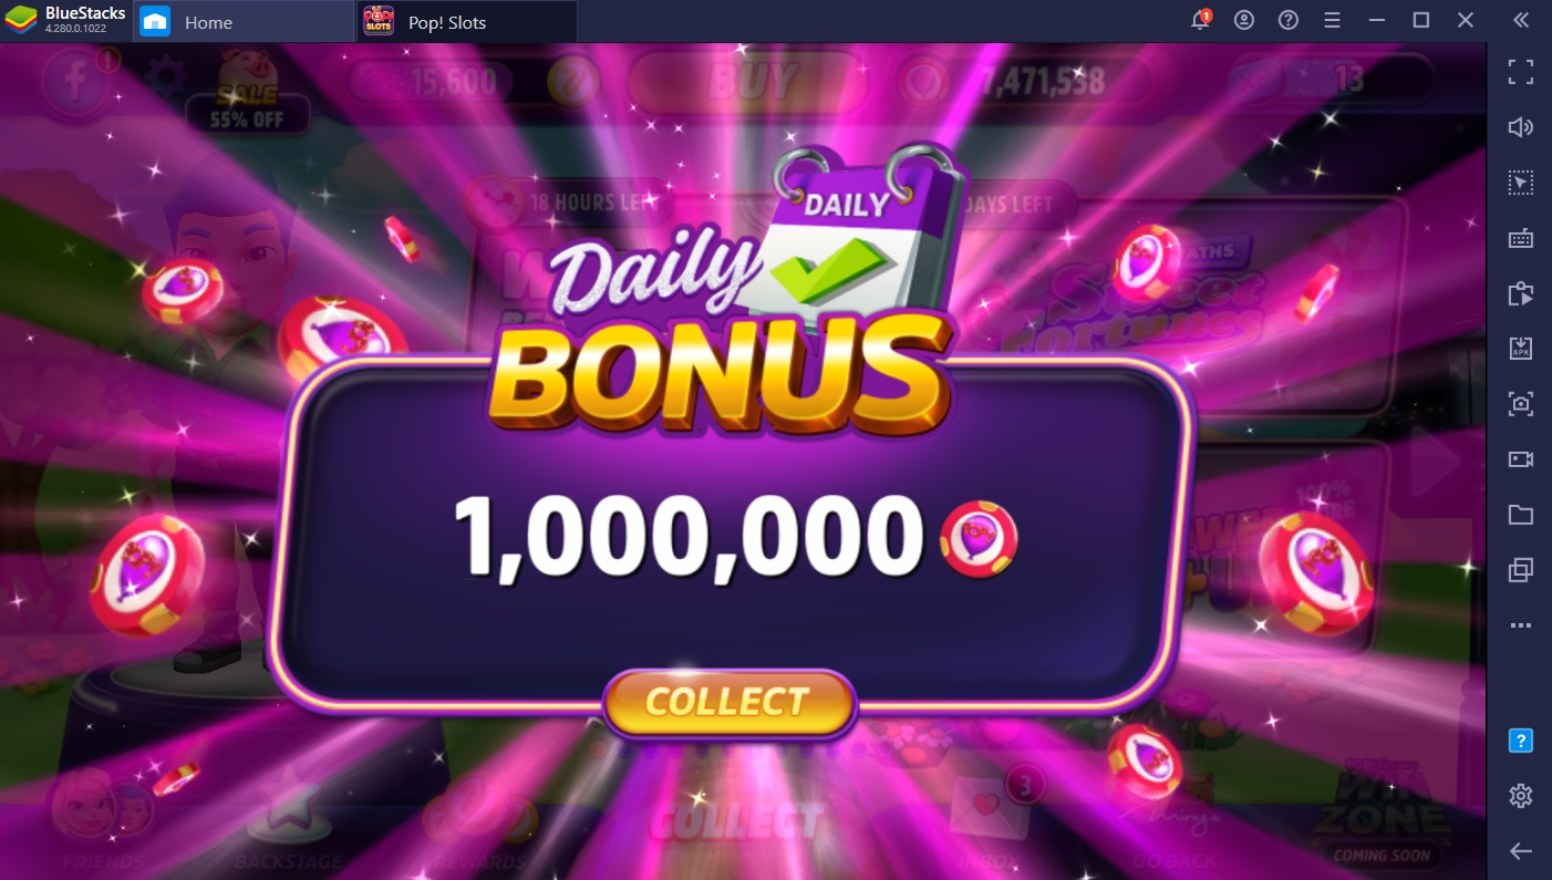 Guide to Getting More Chips in POP! Slots Casino | BlueStacks